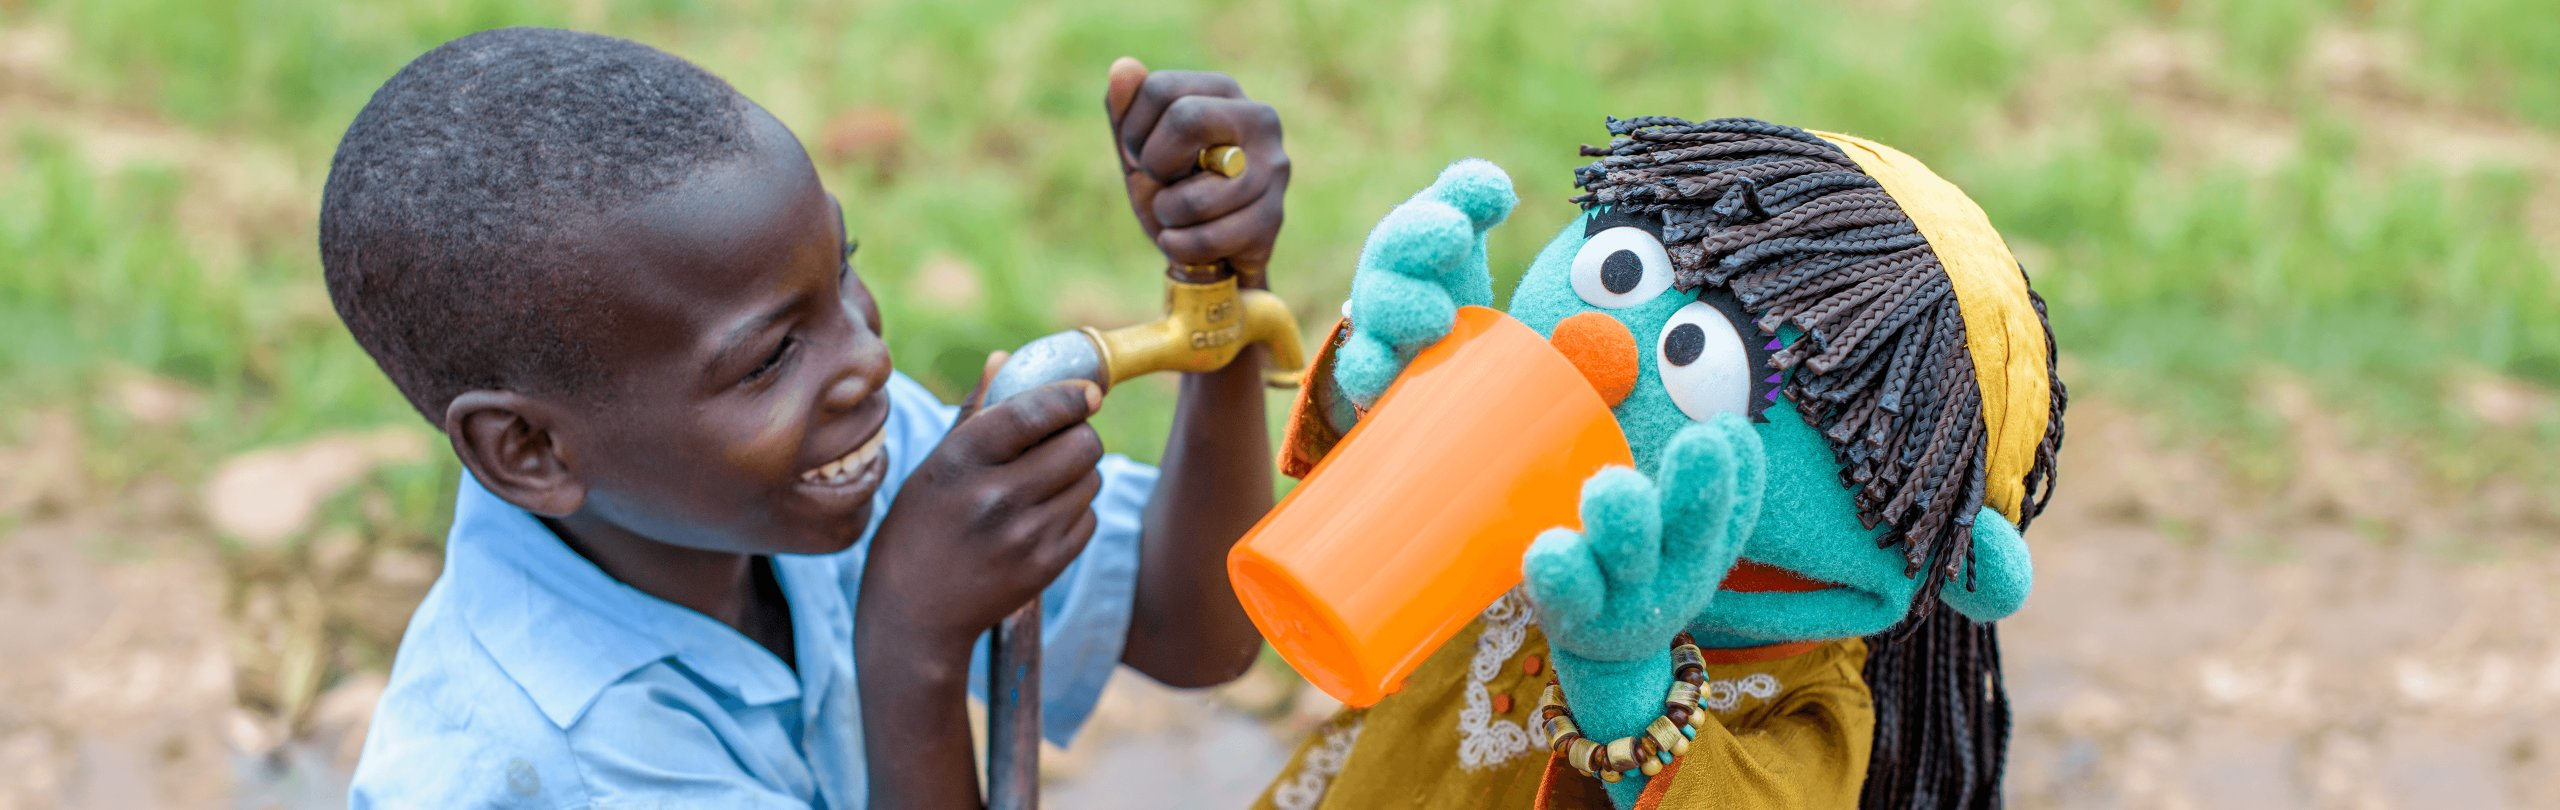 Young boy pours water for muppet Raya to drink from an orange cup